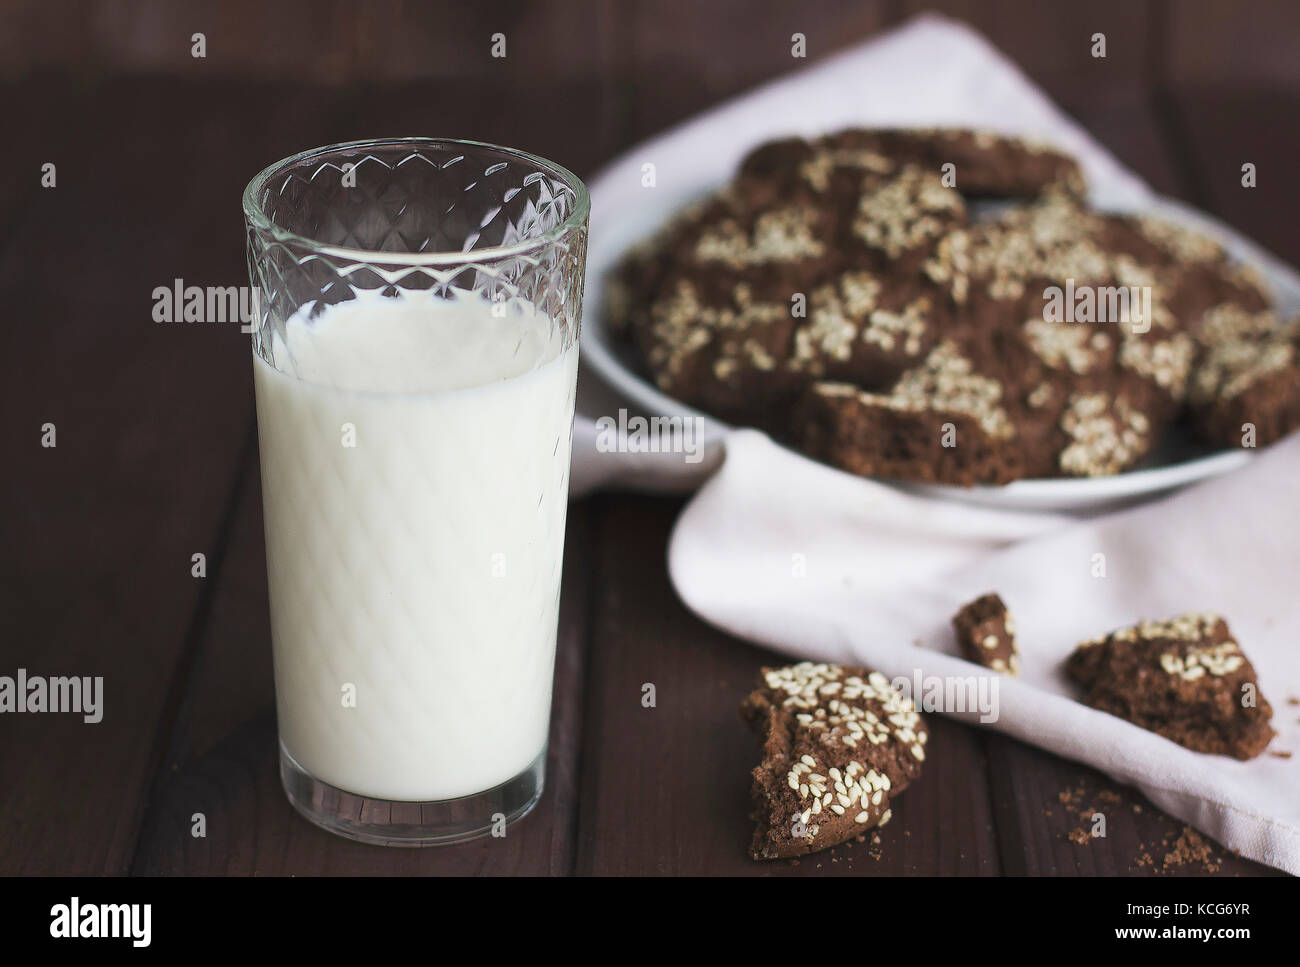 Chocolate cookies with sesame seeds in a vintage plate and a glass of milk on wooden background - Stock Image